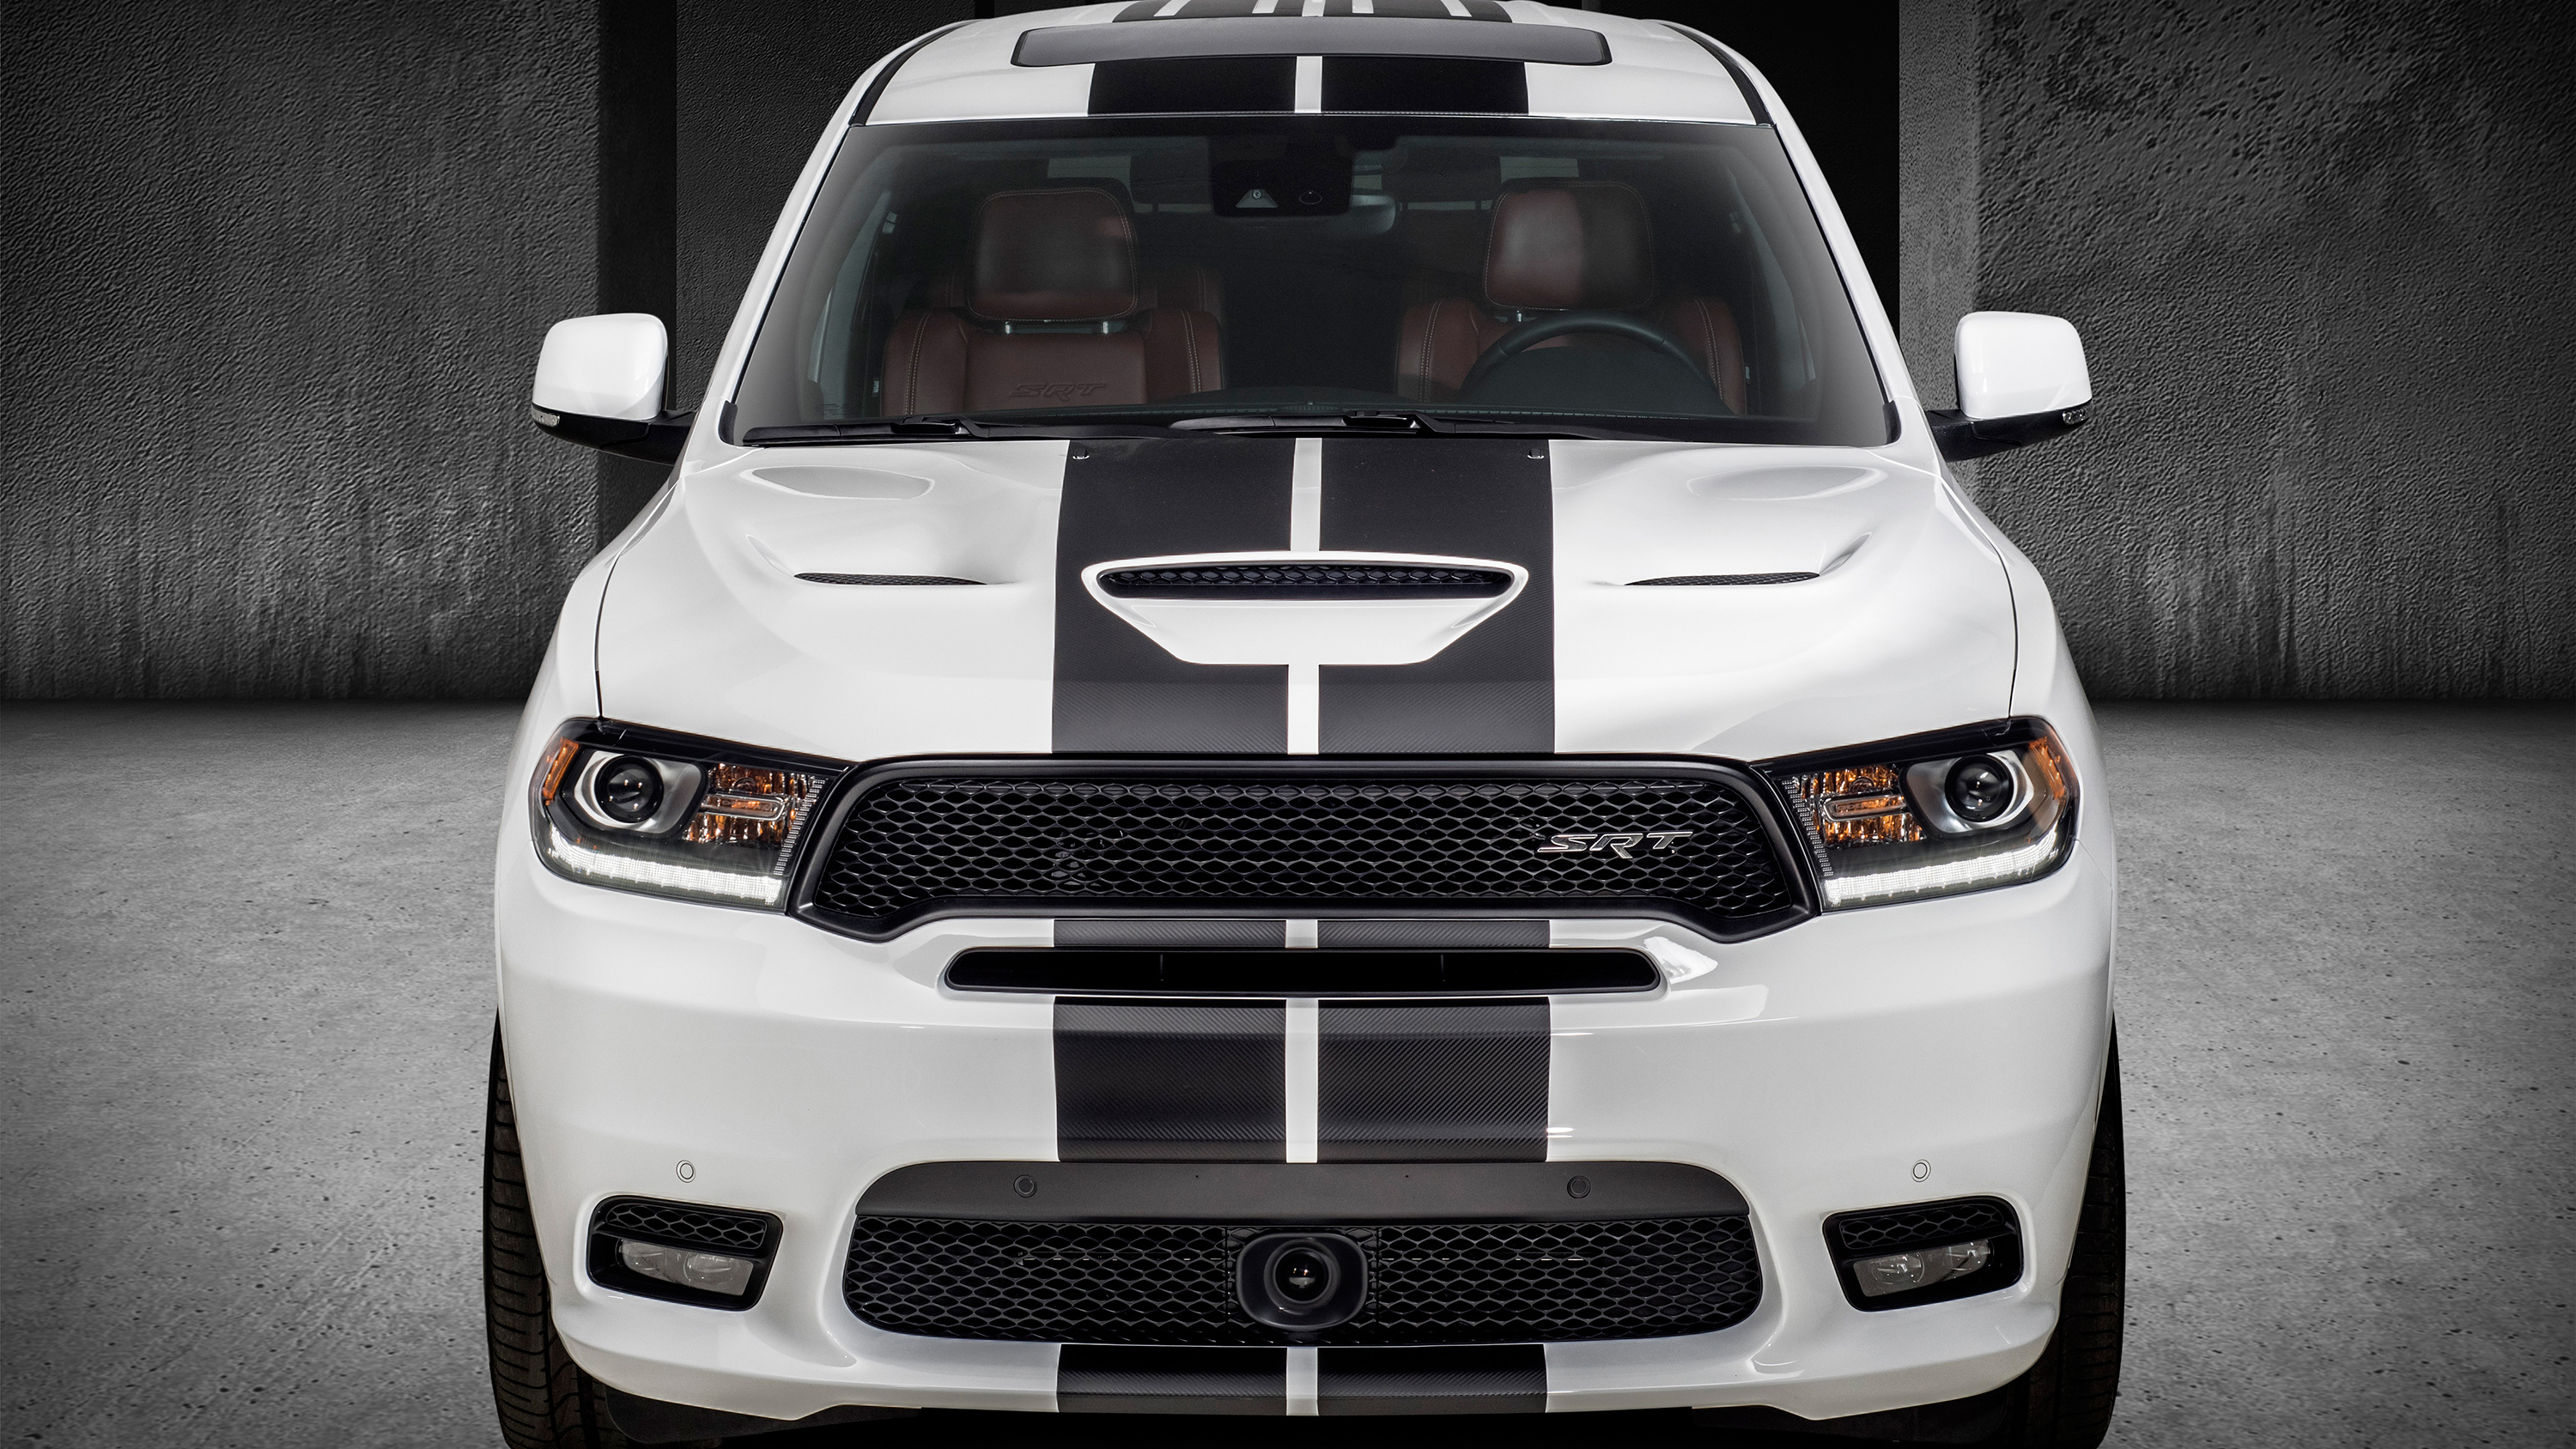 2018 Mopar Dodge Durango Srt Wallpaper Hd Car Wallpapers